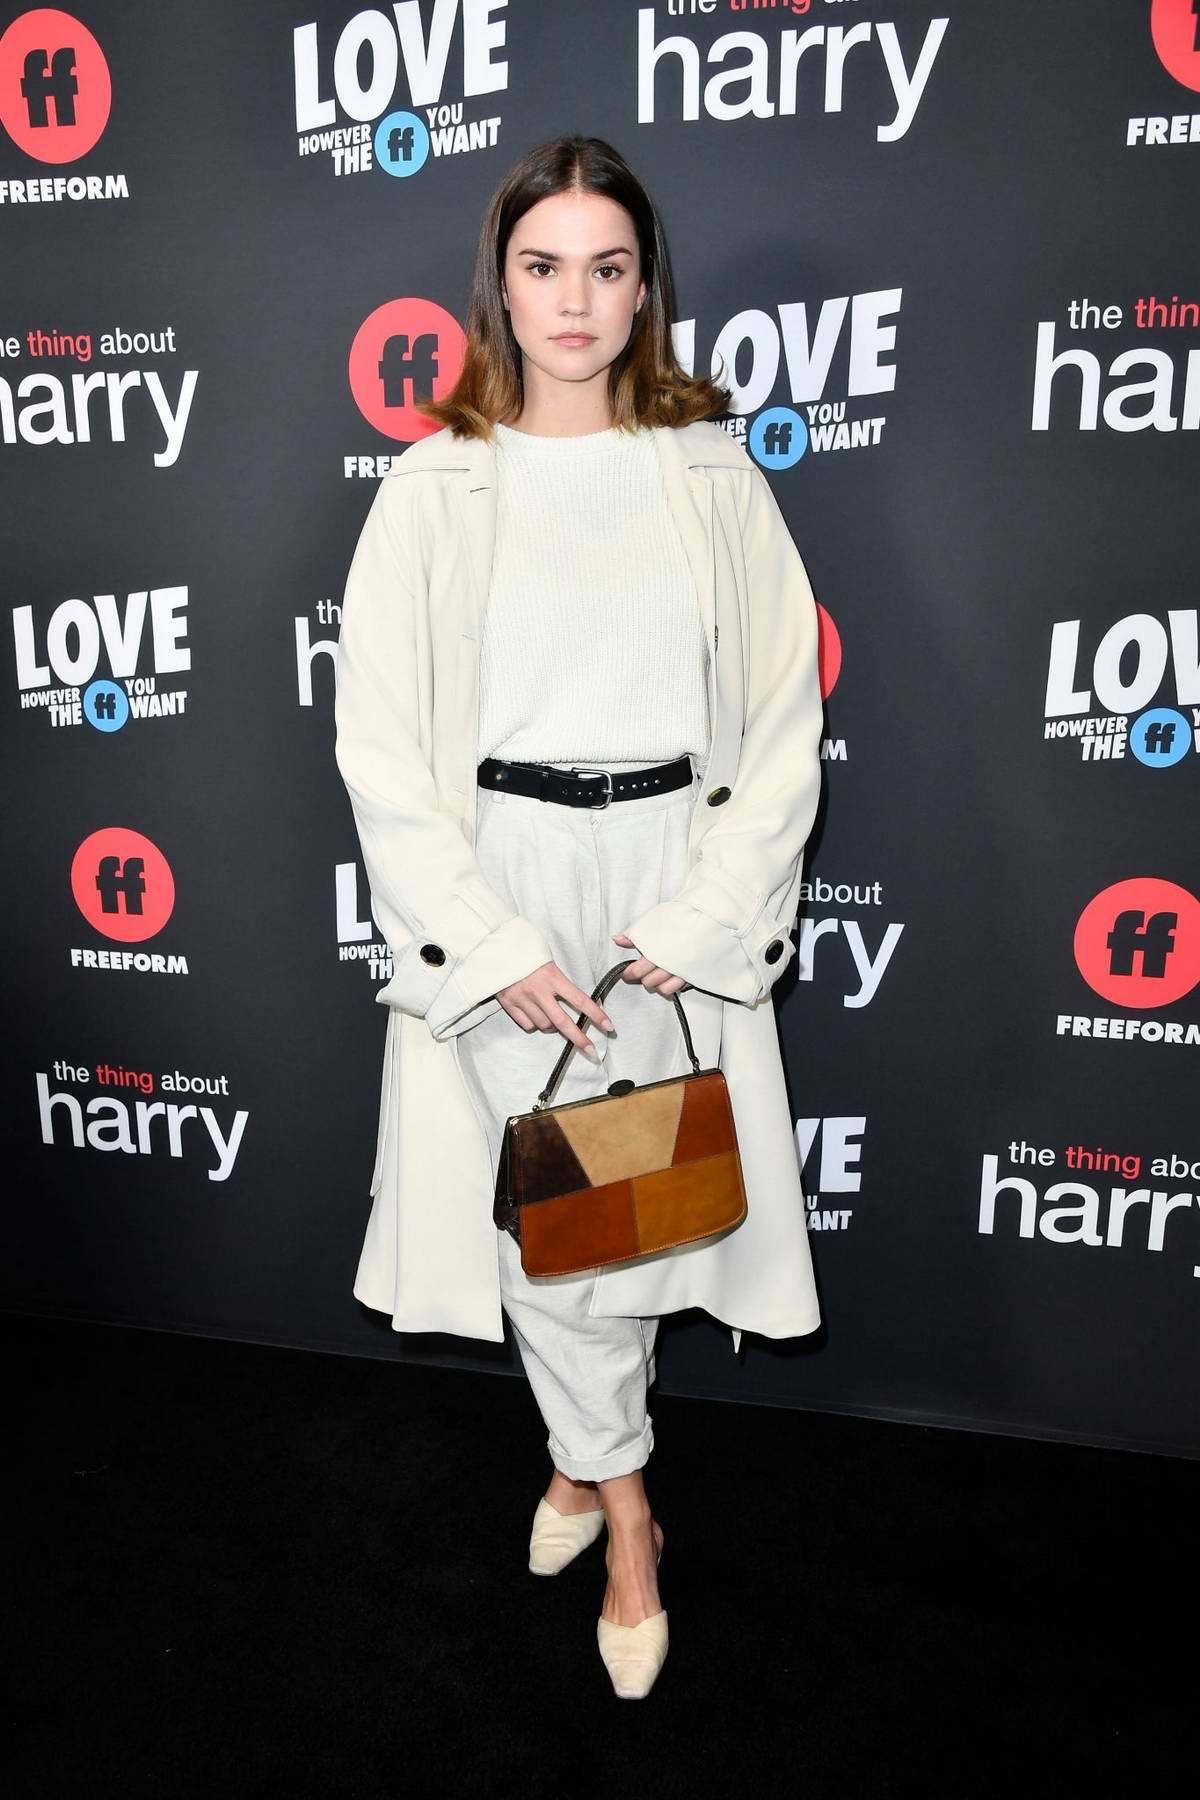 Maia Mitchell attends the Premiere of 'The Thing About Harry' in West Hollywood, California